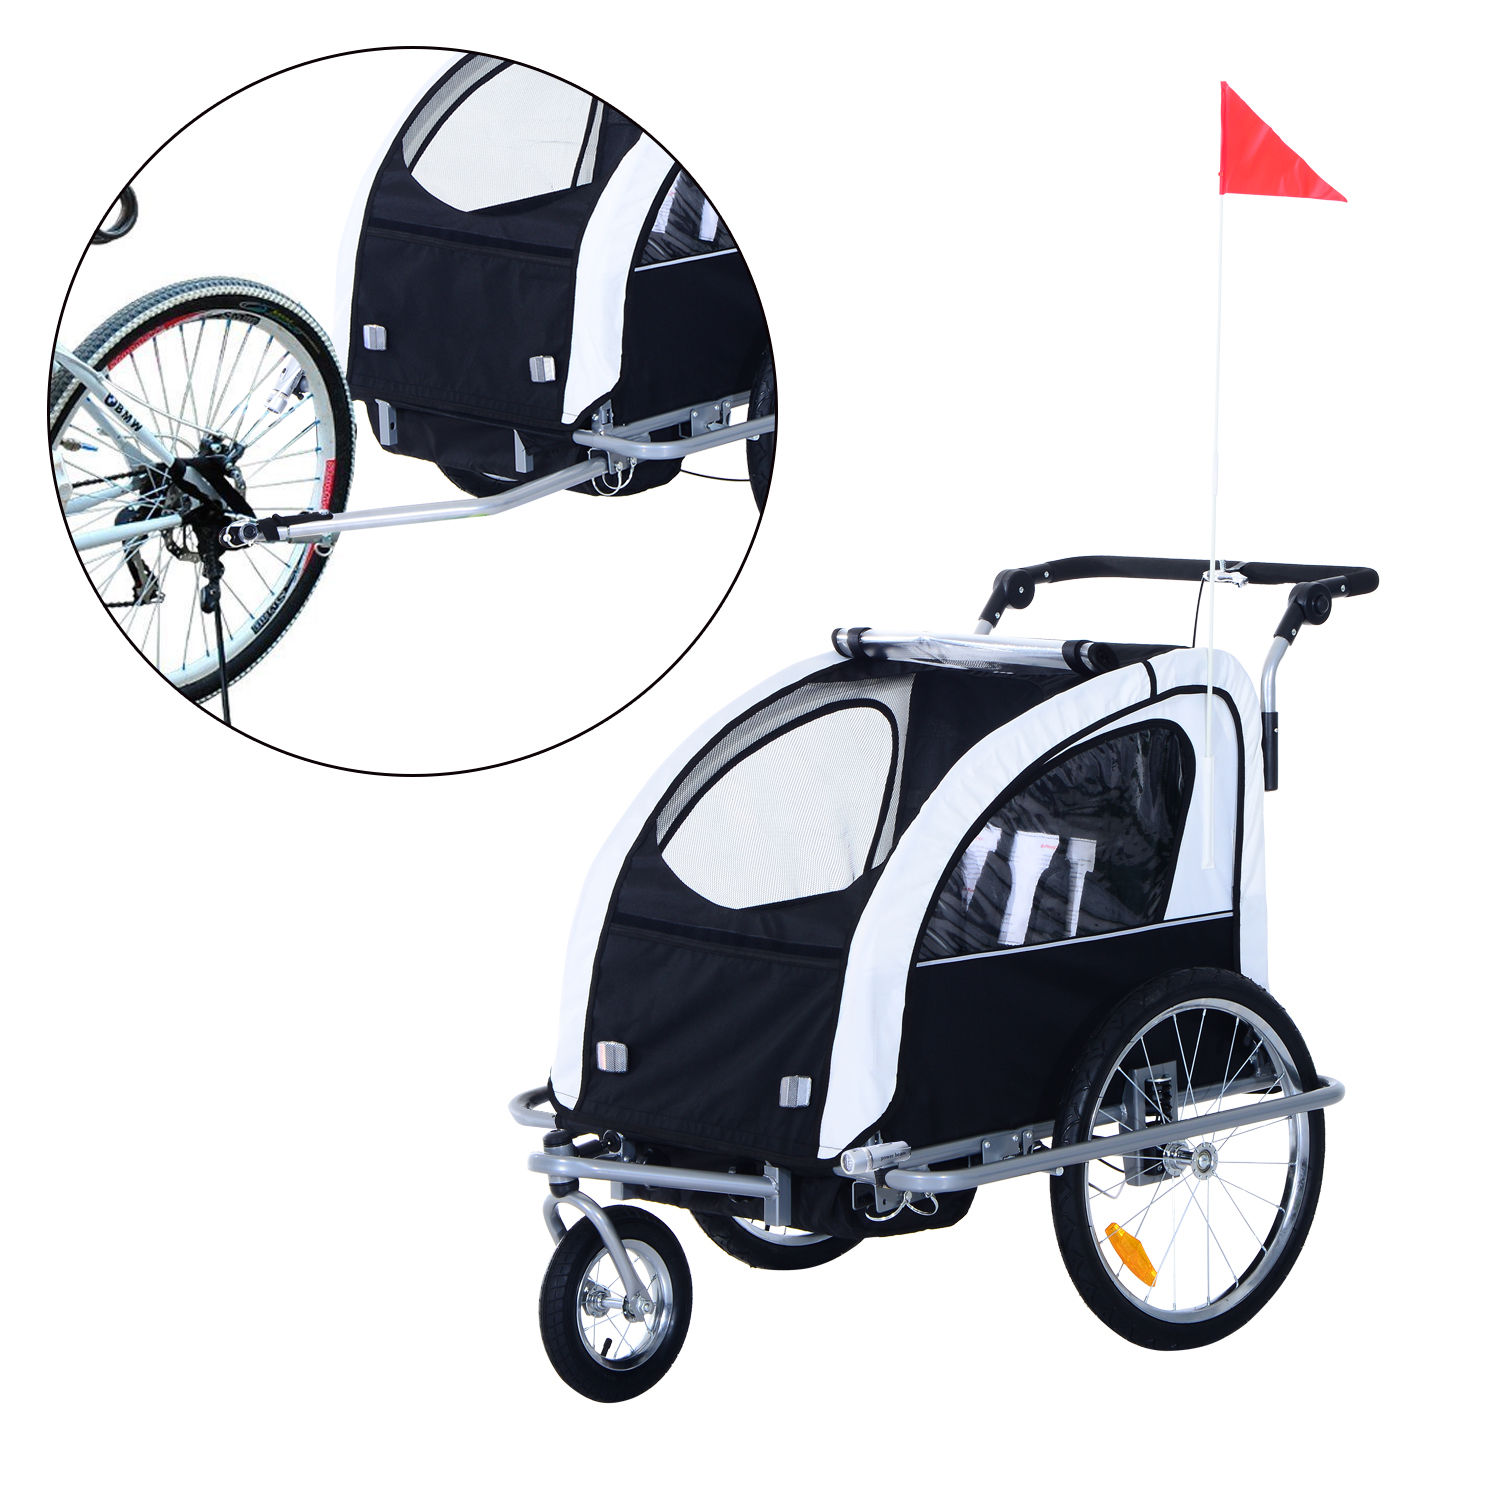 2-Seater-Child-Bike-Trailer-Kids-Carrier-Safety-Harness-Baby-Stroller-Jogger thumbnail 17